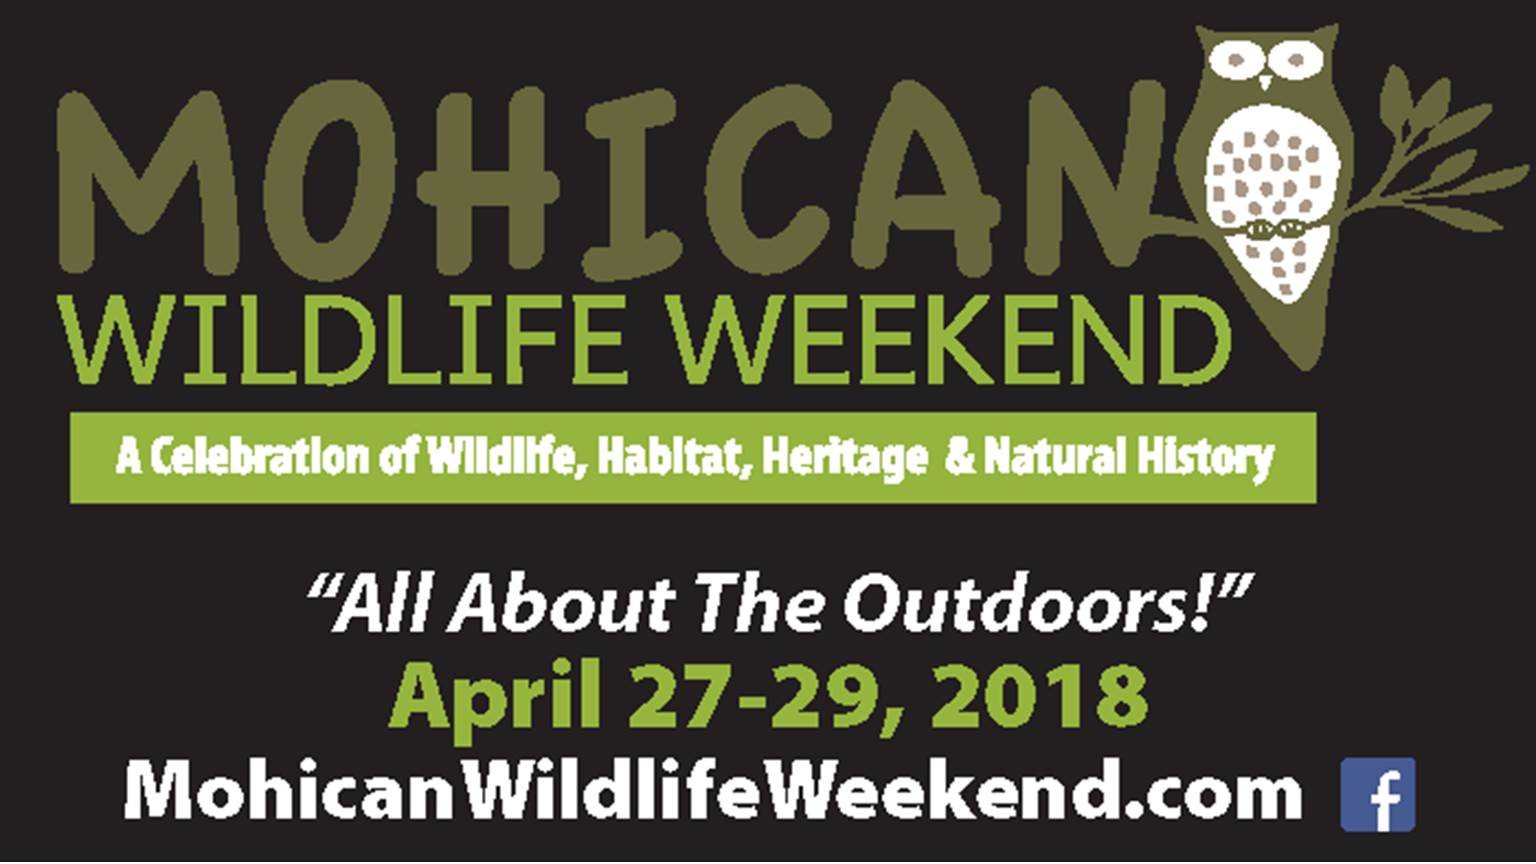 17th Annual Mohican Wildlife Weekend